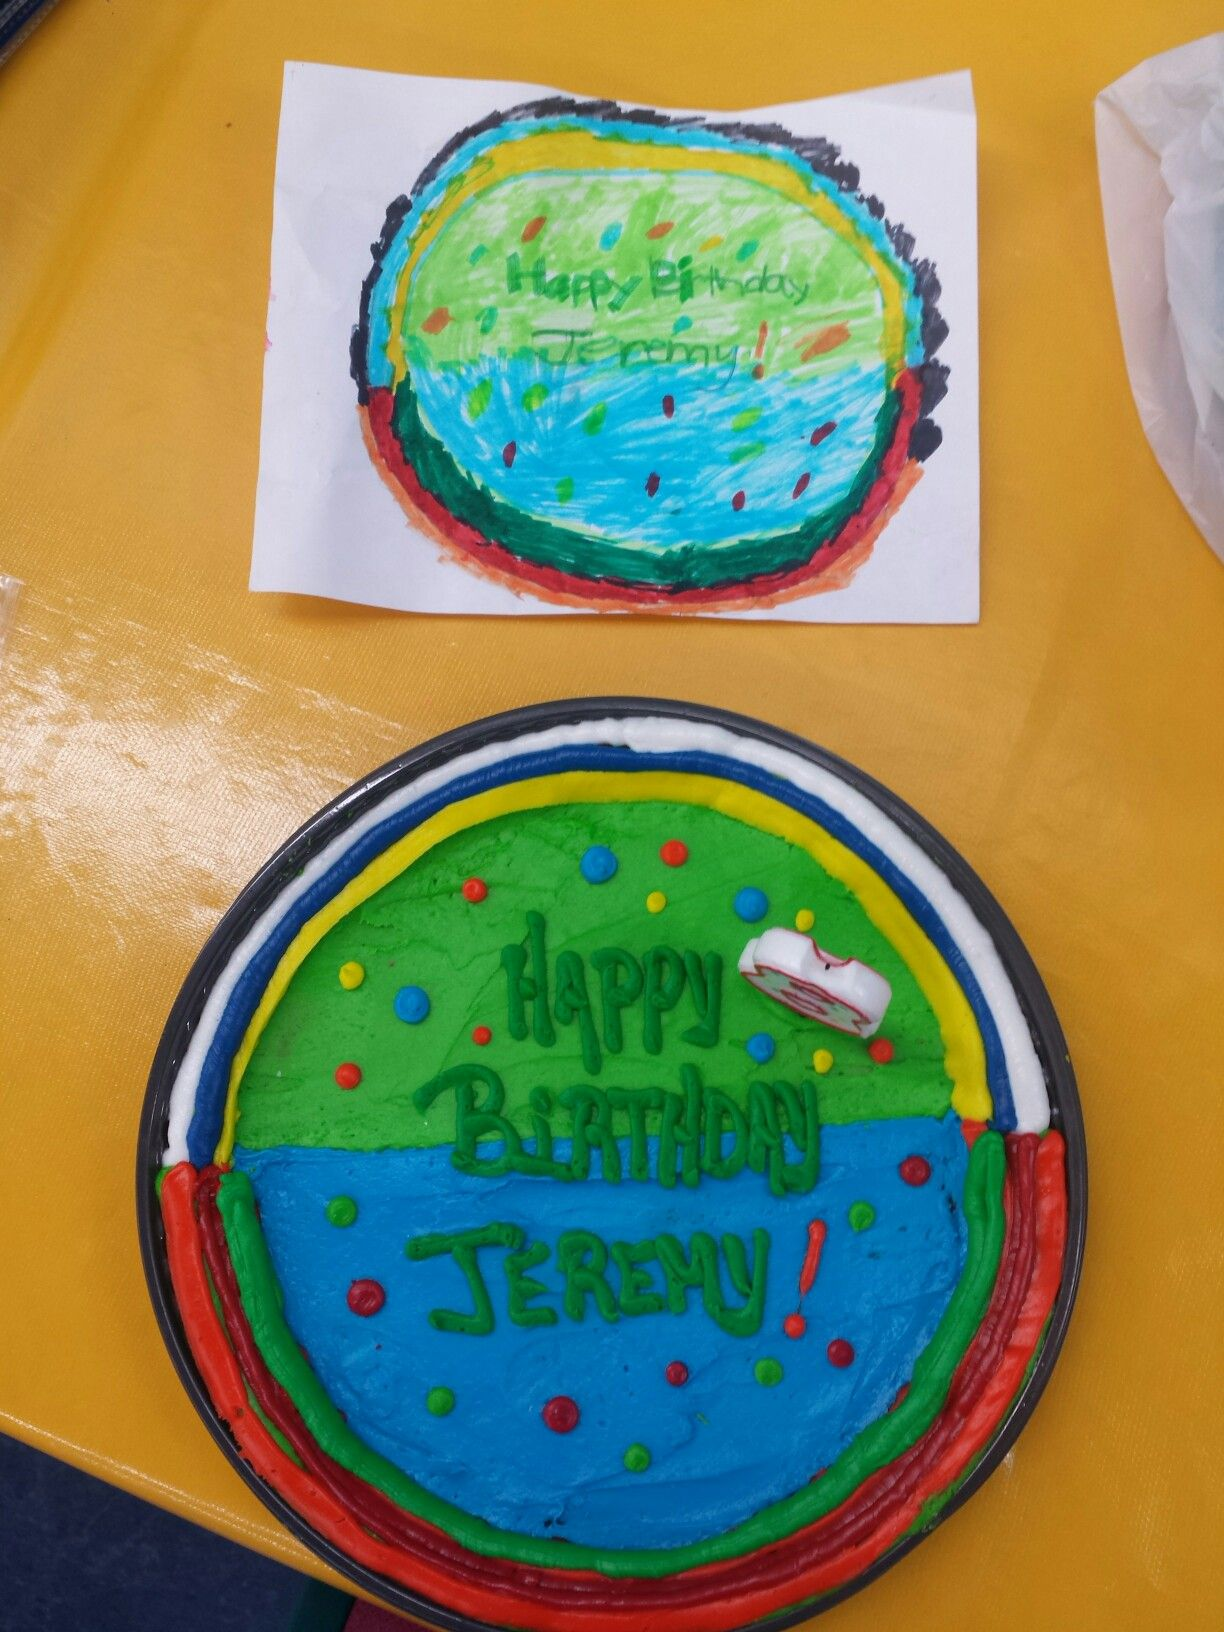 I had my son design his 8th birthday cookie cake and Jewel